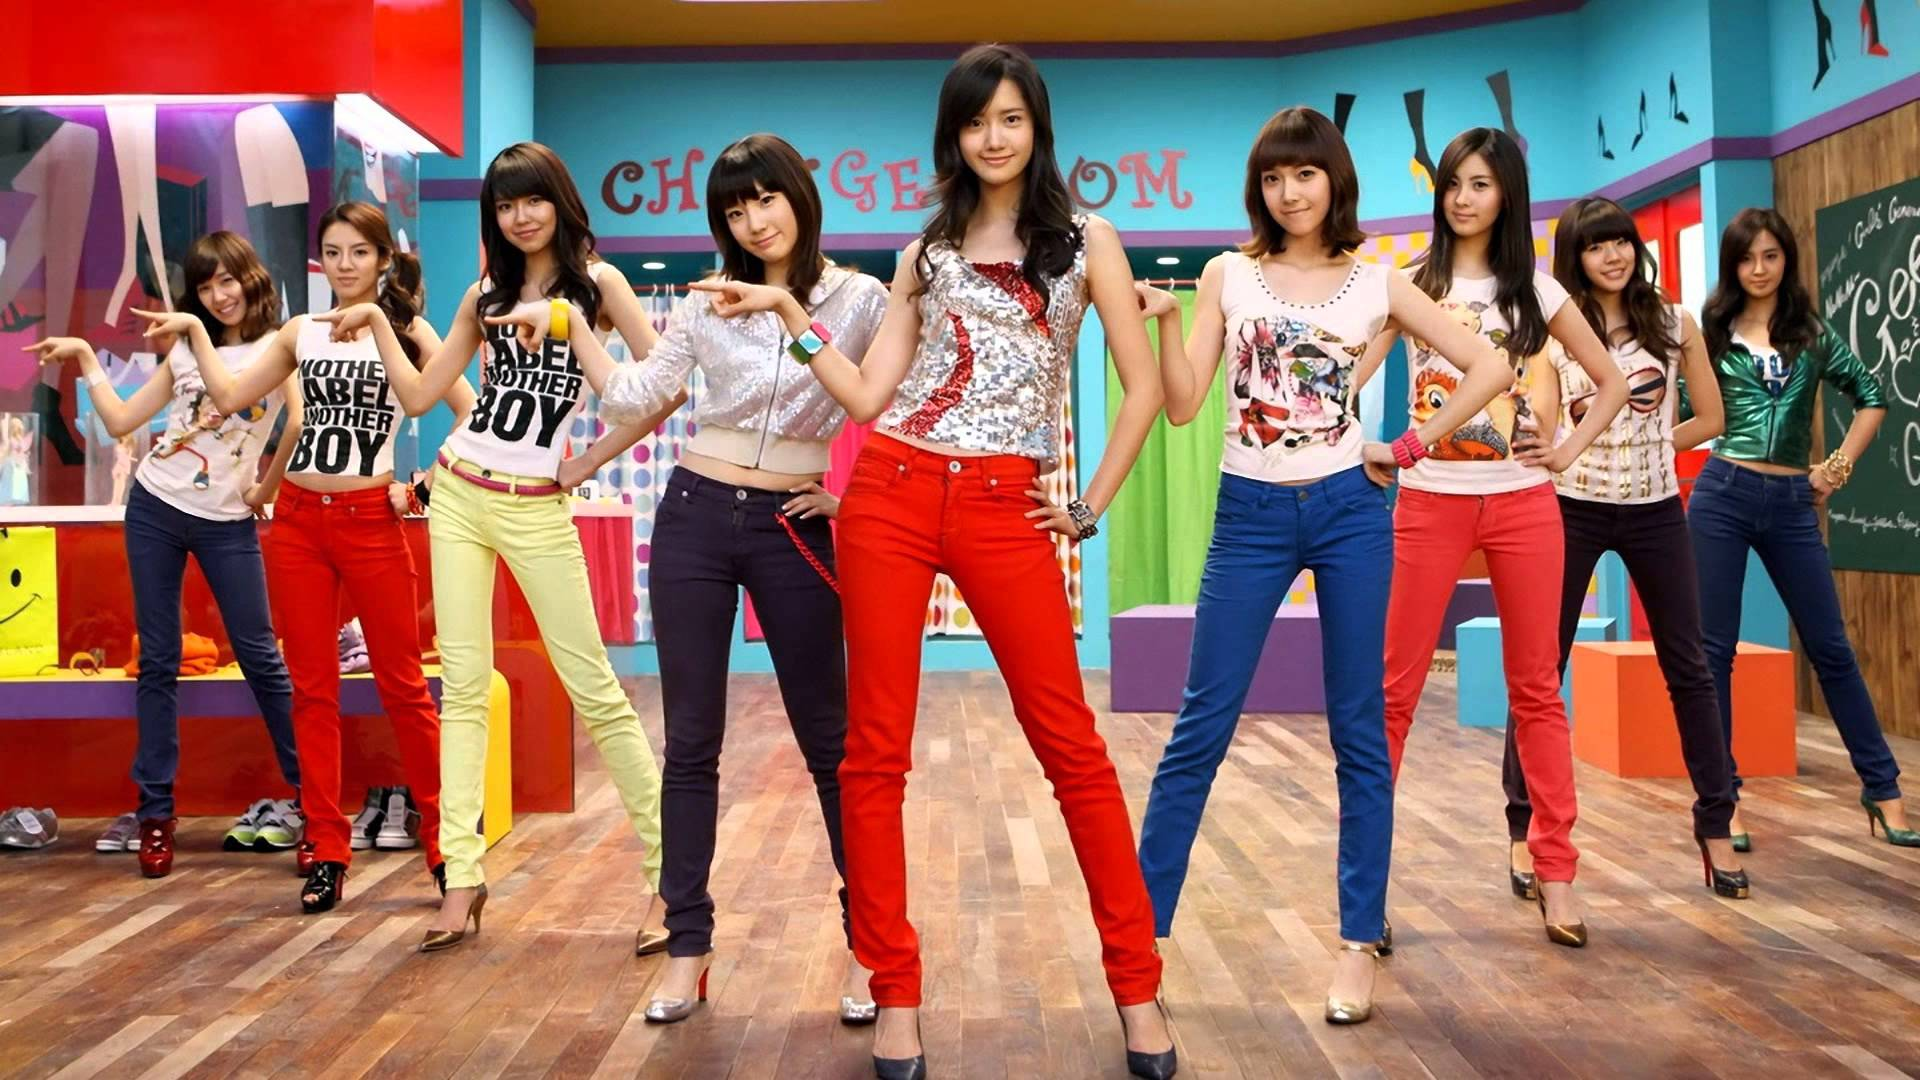 how to make a girl group and become famous